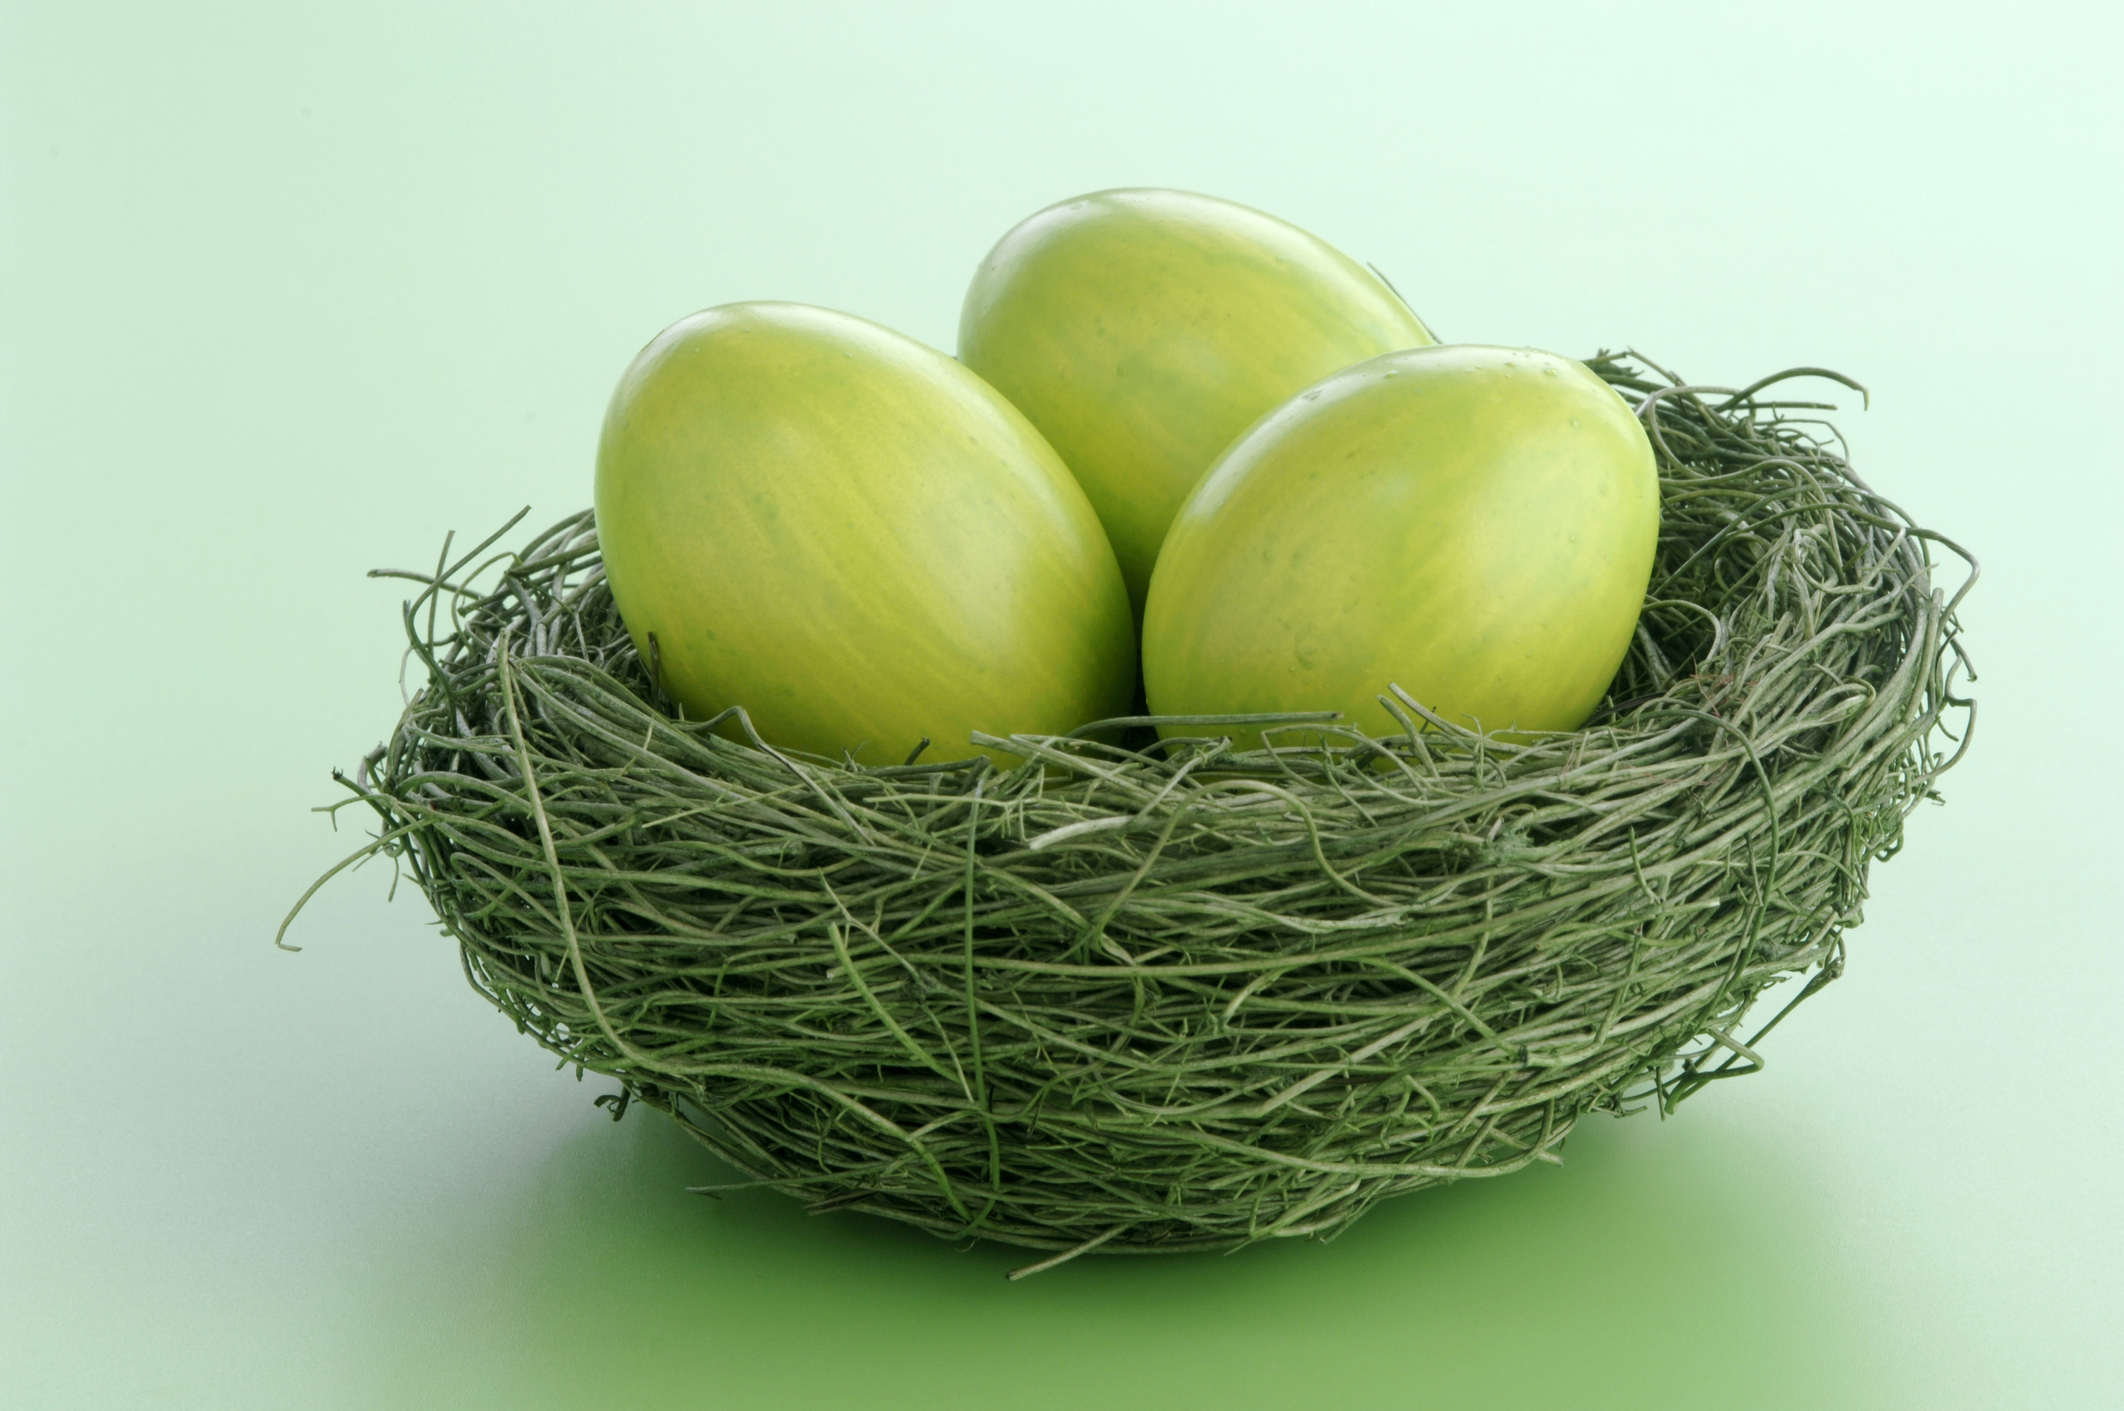 How can you make sure your retirement nest egg is green? Not easily